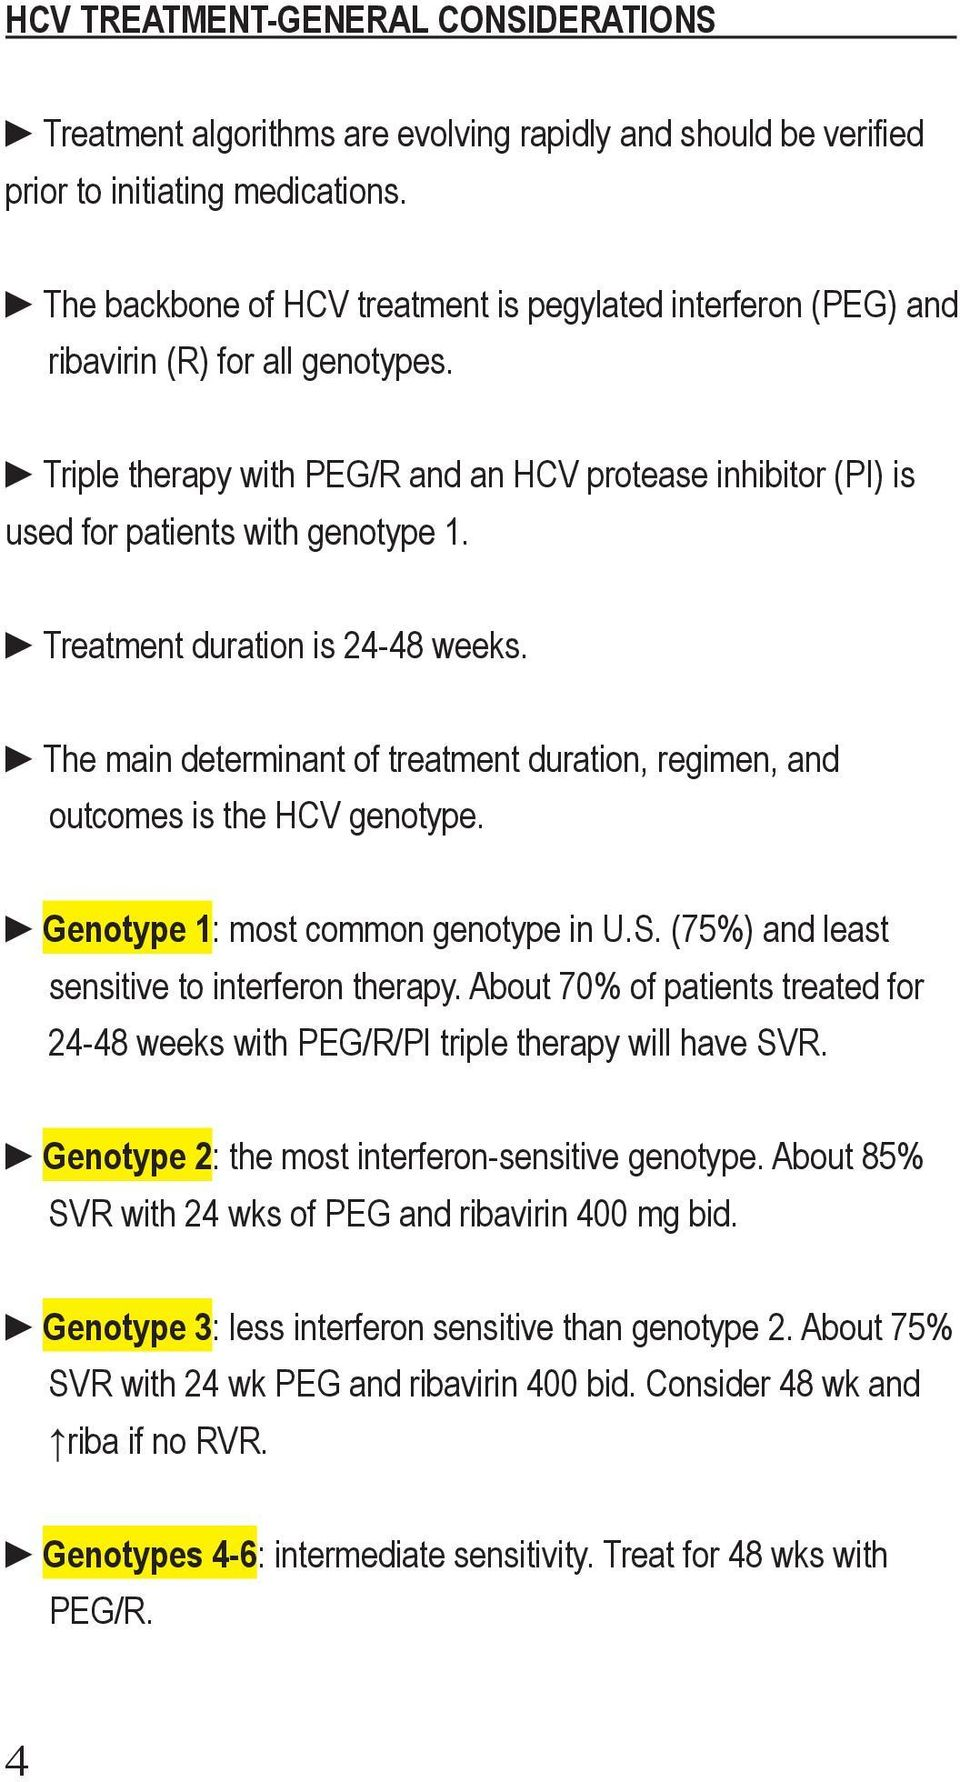 Treatment duration is 24-48 weeks. The main determinant of treatment duration, regimen, and outcomes is the HCV genotype. Genotype 1: most common genotype in U.S.